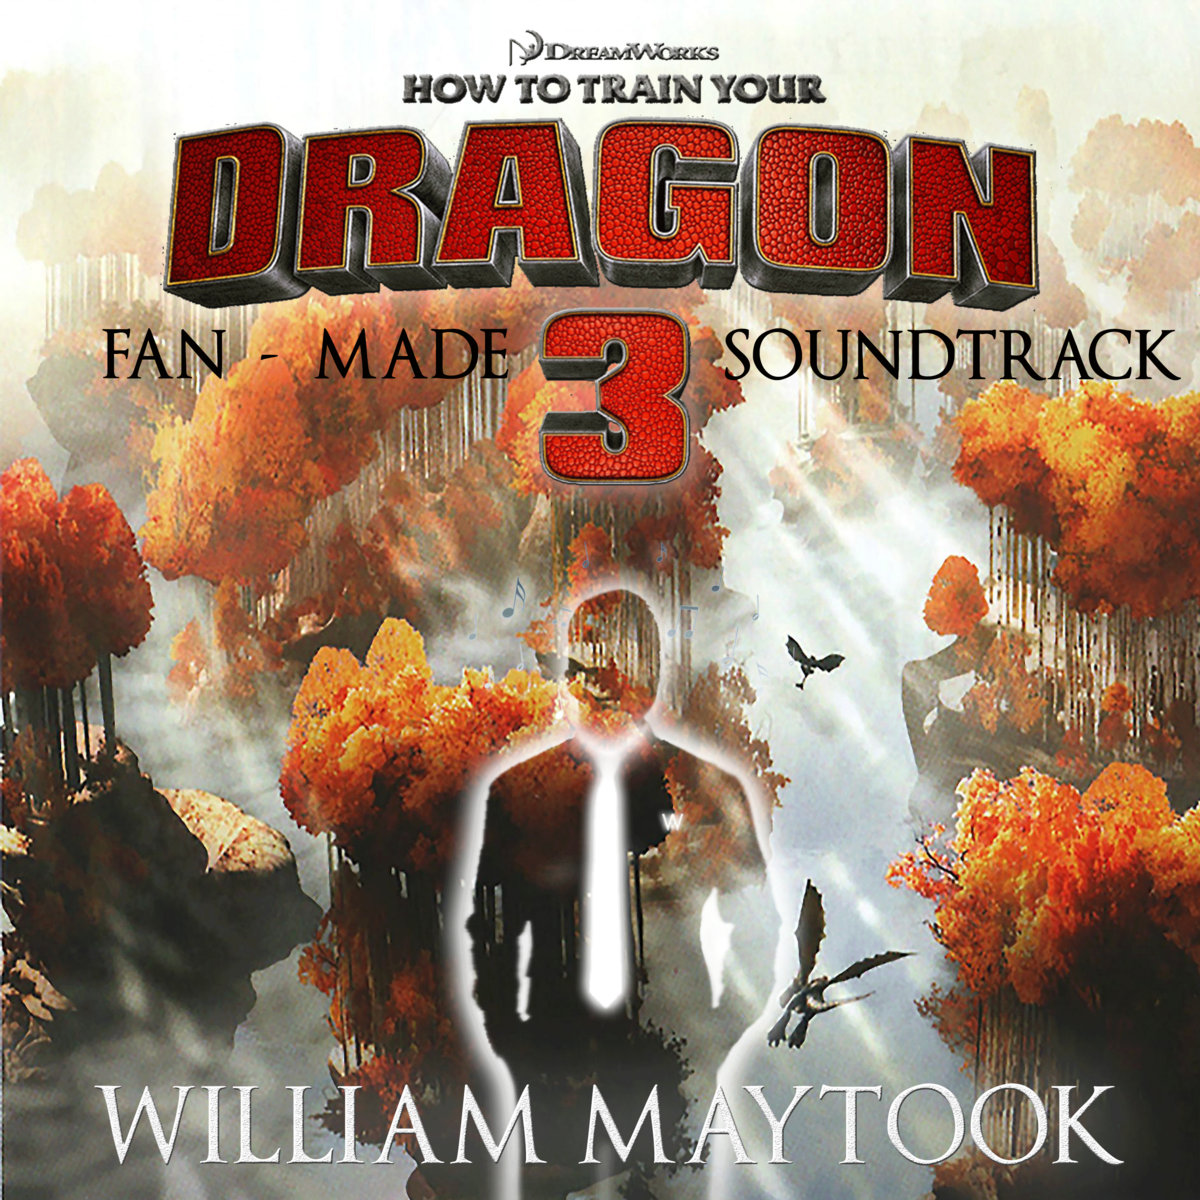 Httyd 3 fan made soundtrack william maytook by william maytook ccuart Image collections